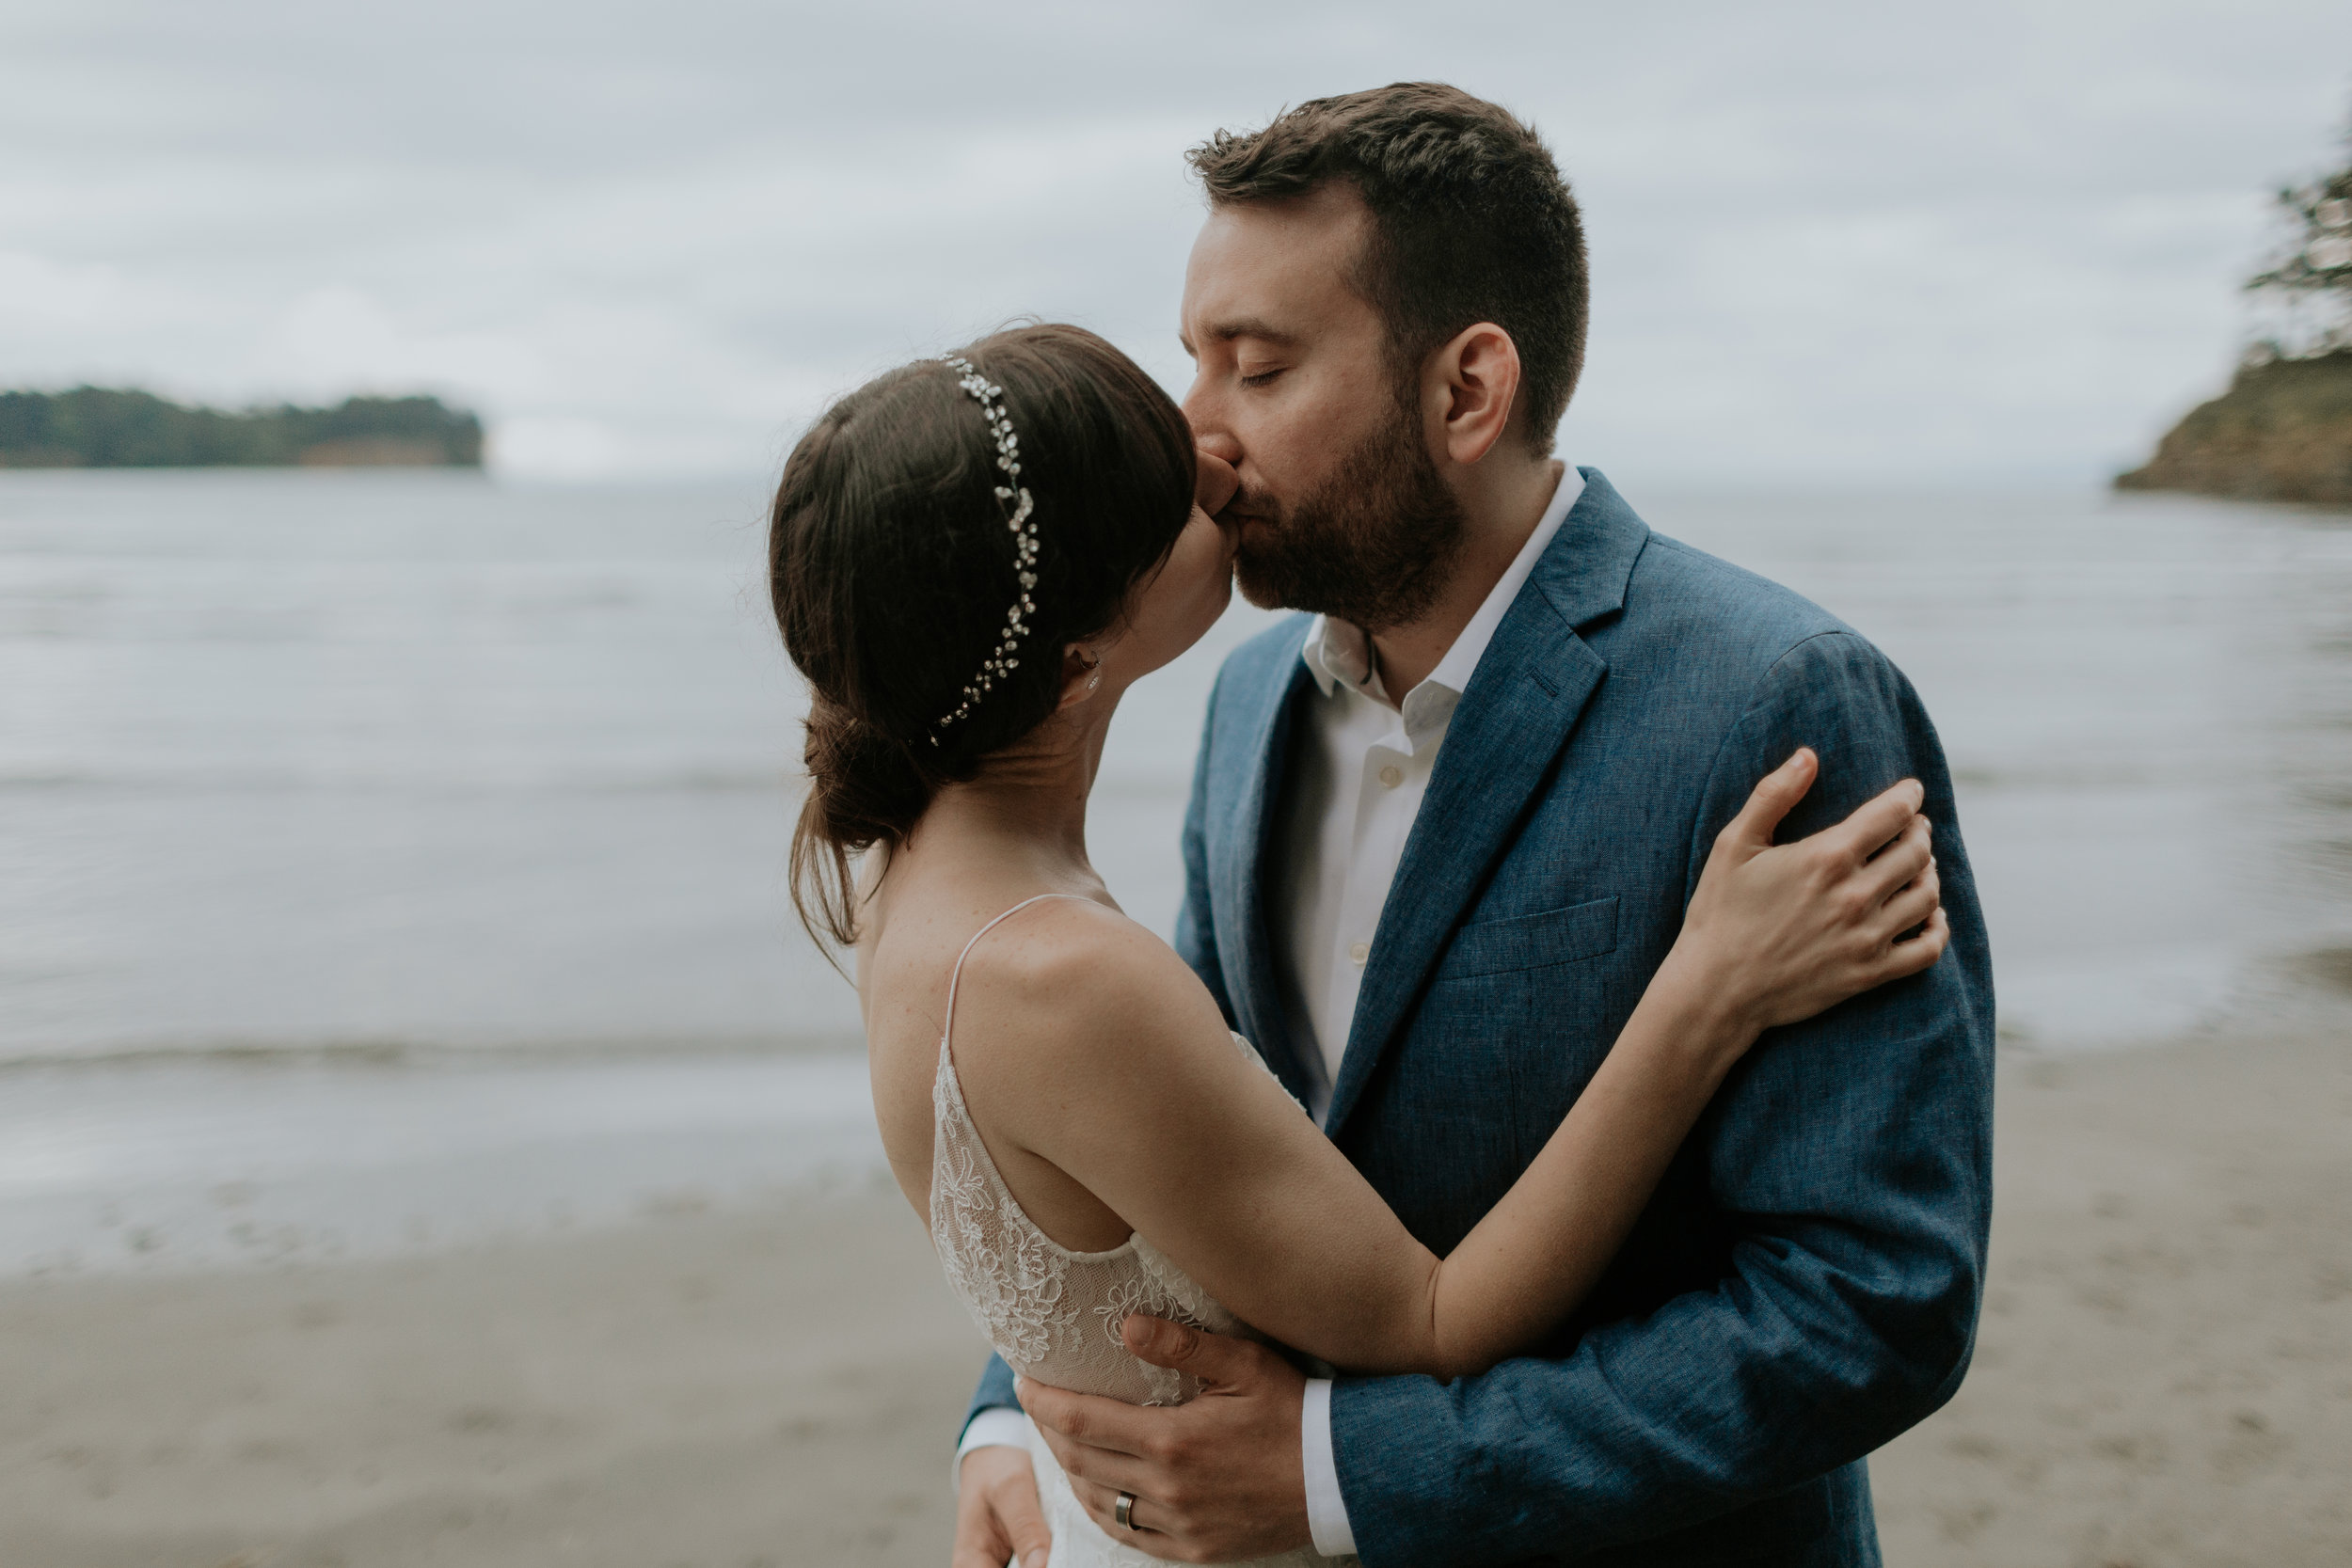 PNW-elopement-wedding-engagement-olympic national park-port angeles-hurricane ridge-lake crescent-kayla dawn photography- photographer-photography-kayladawnphoto-295.jpg